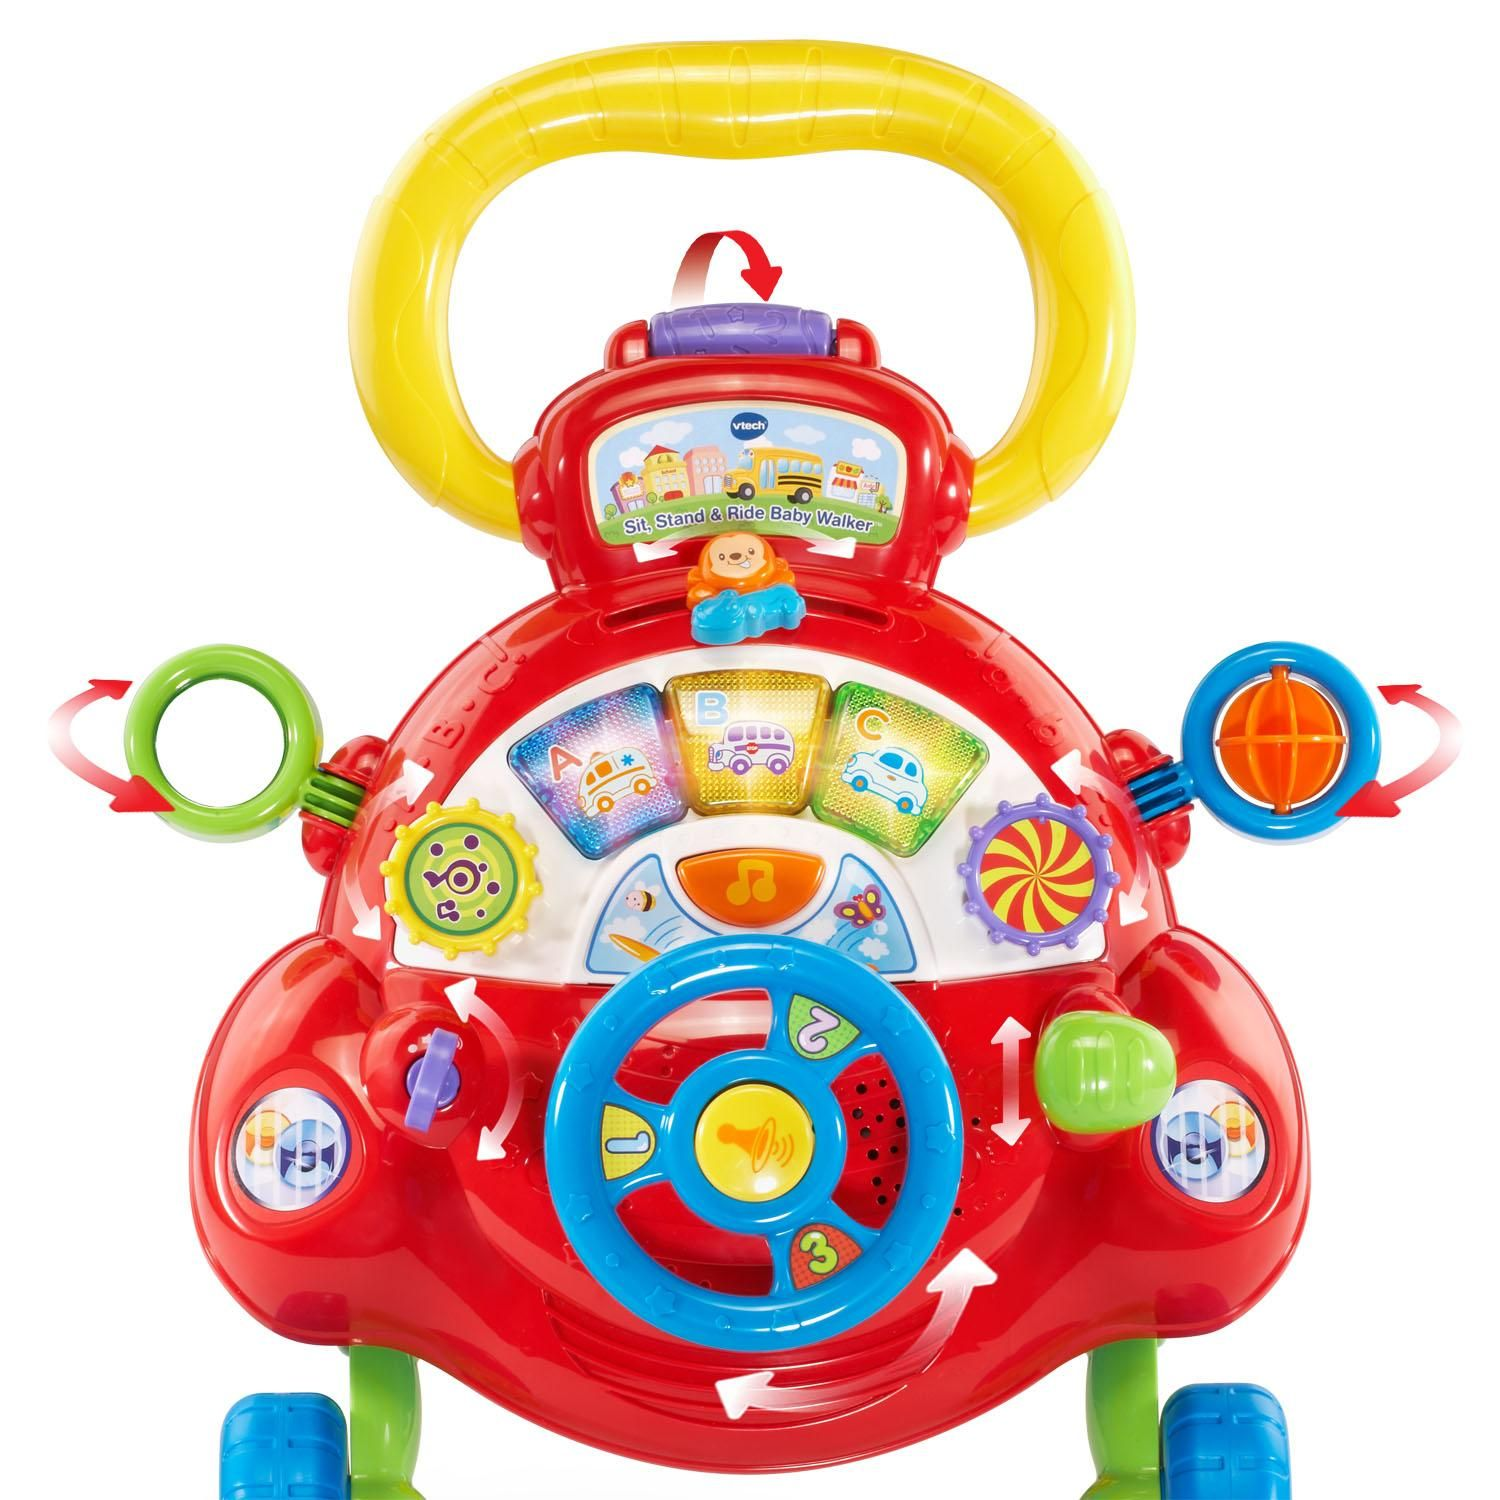 Amazon VTech Sit Stand and Ride Baby Walker Toys & Games